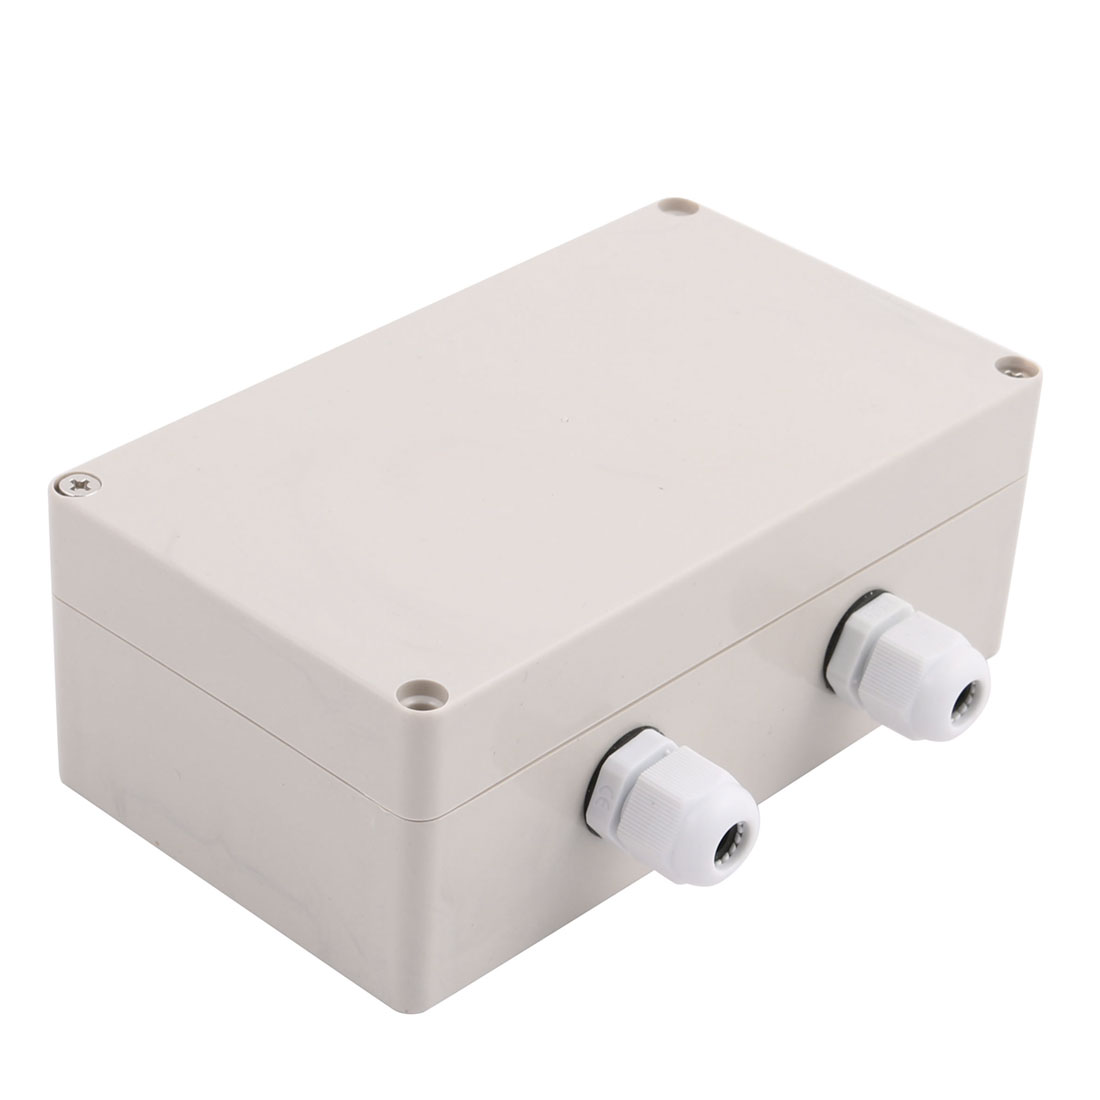 Set 158x90x60mm 1 Inlet to 2 Outlet Junction Box w Connector Gland